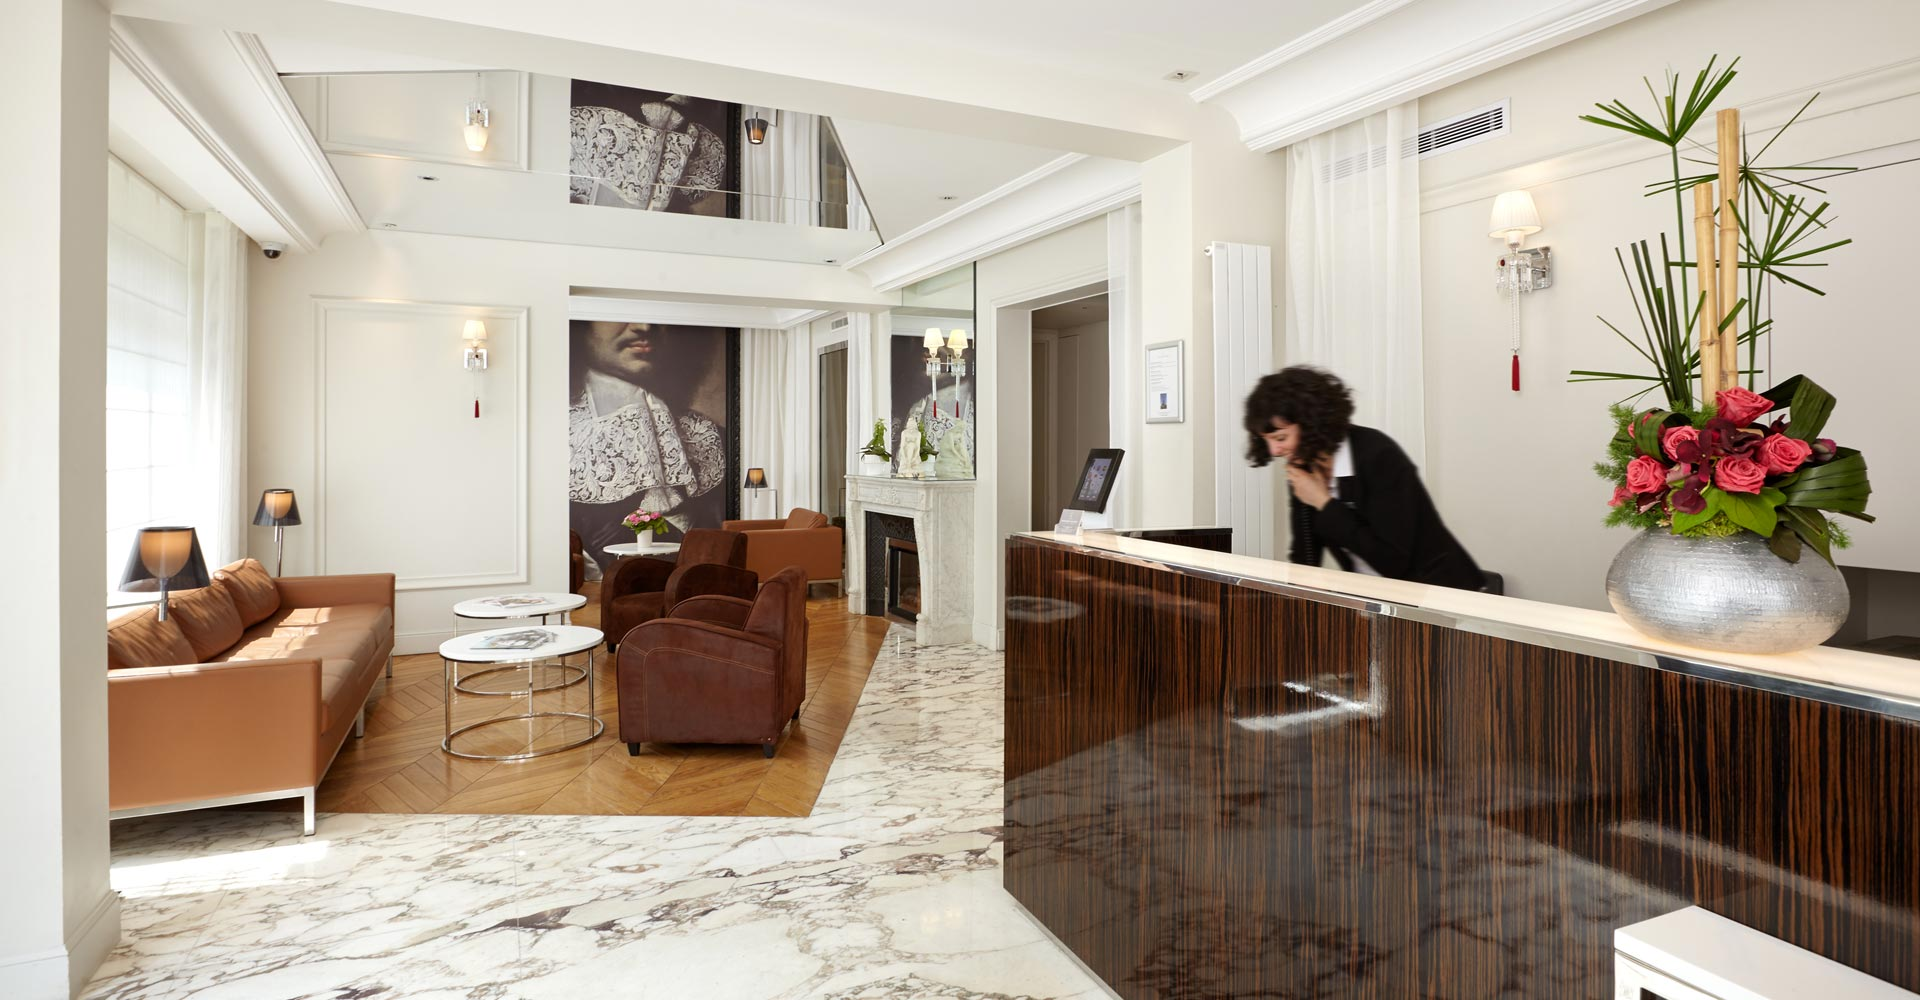 Lobby Hotel 3*Paris | Hotel Tourisme Avenue Paris 15